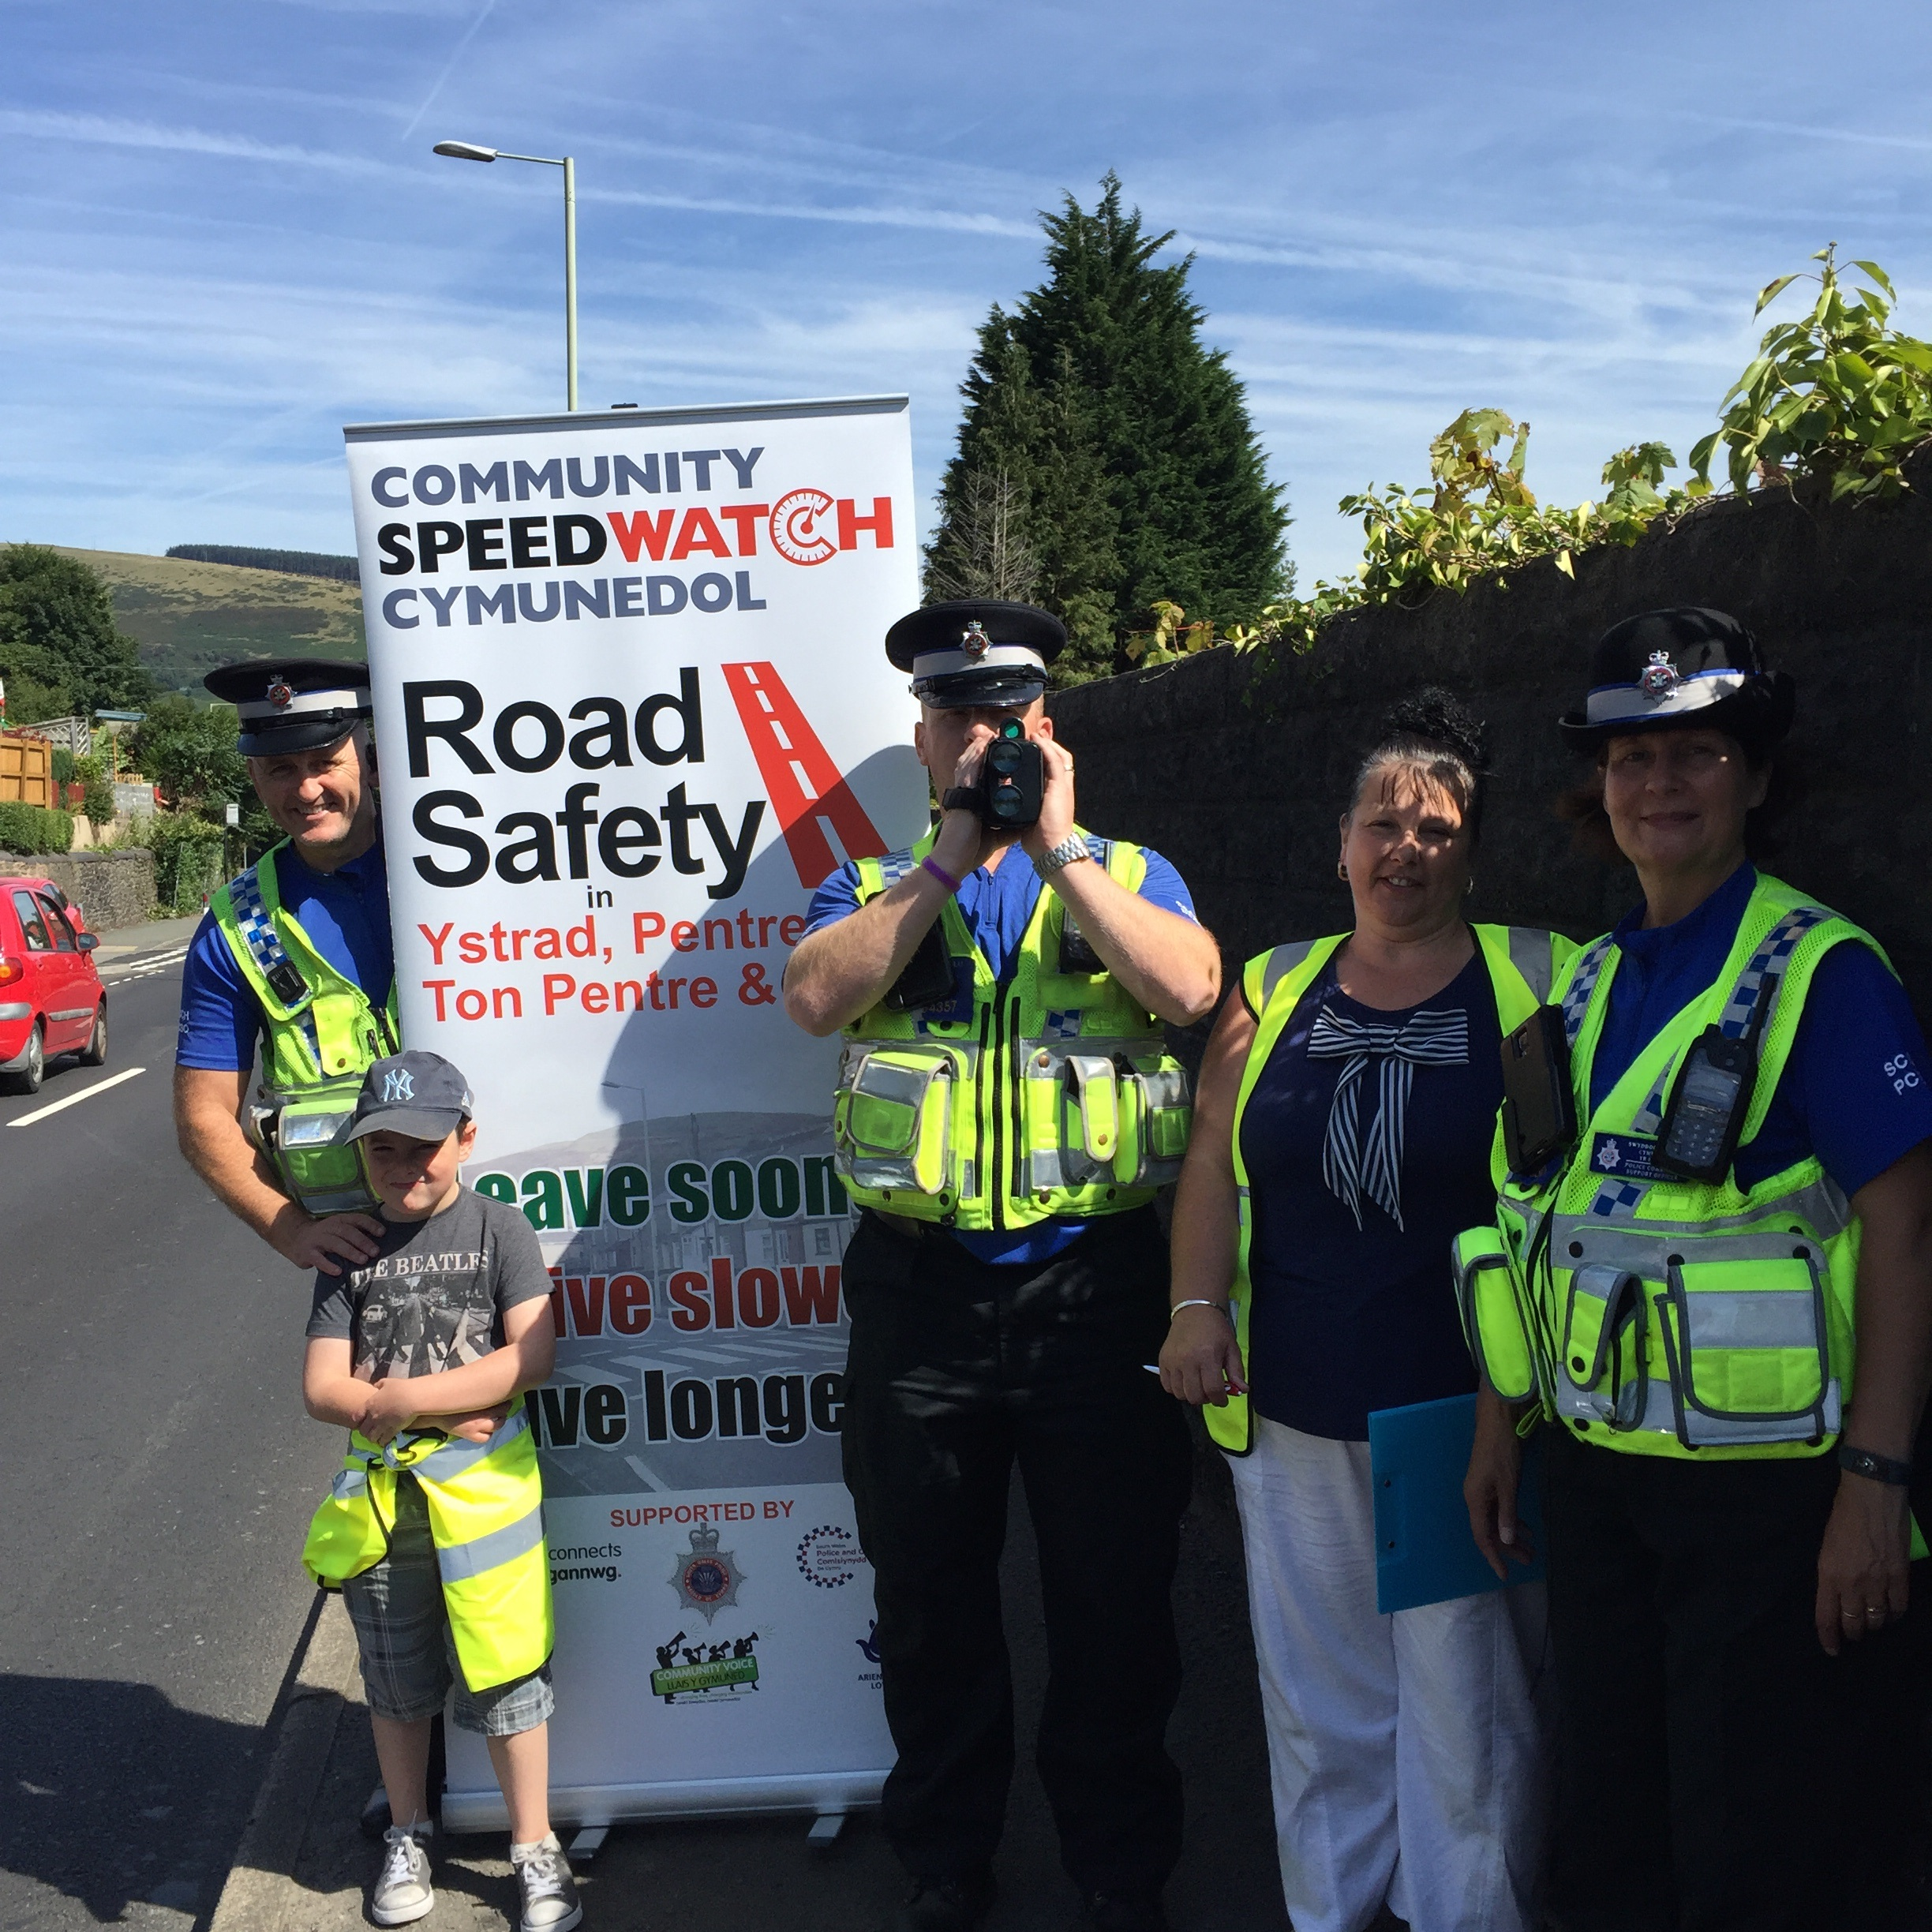 Community Speed Watch Llwynypia